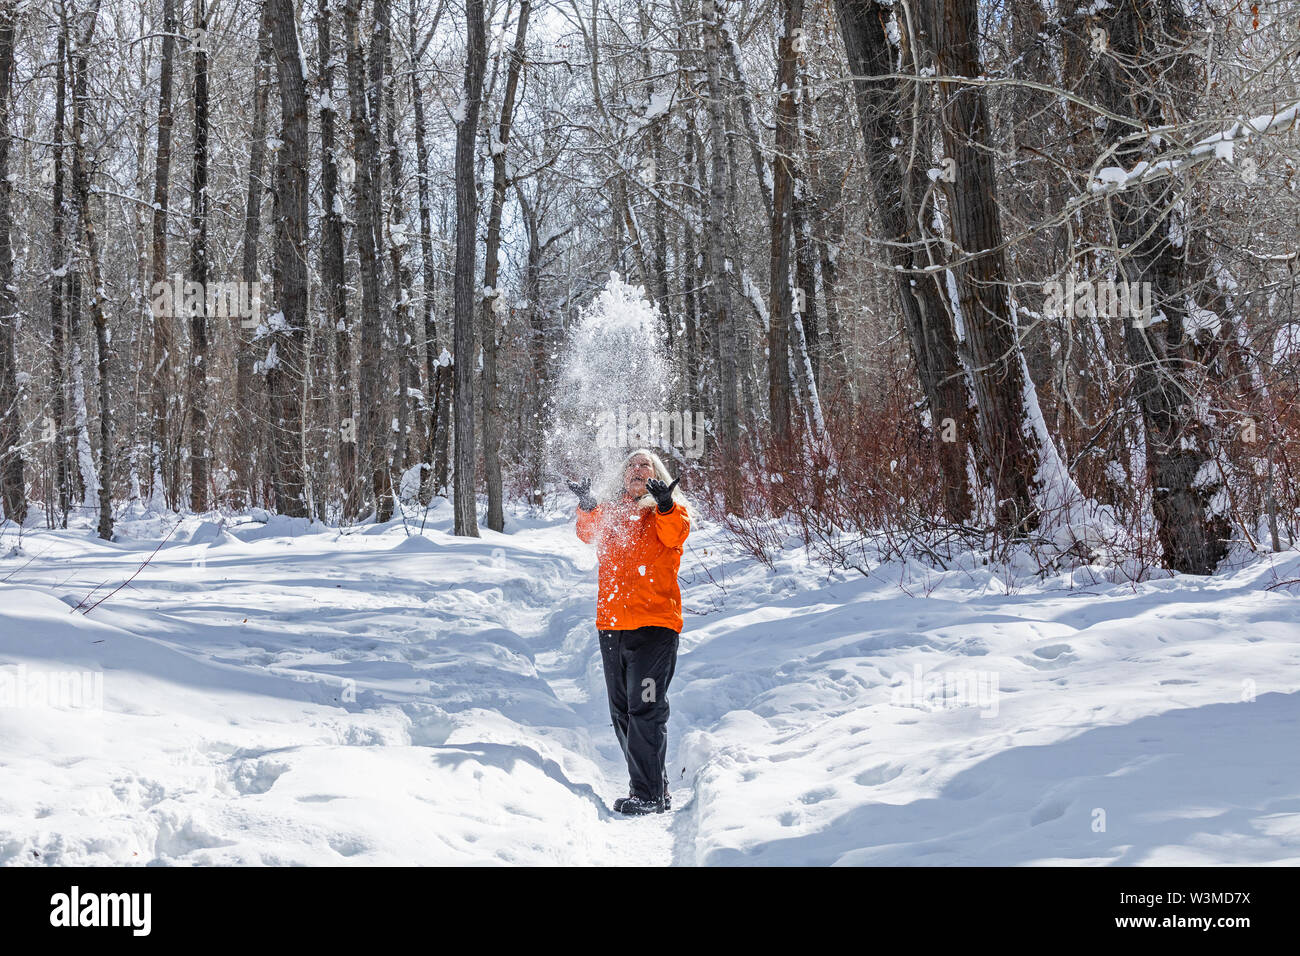 Mature woman wearing orange coat throwing snow by bare trees - Stock Image